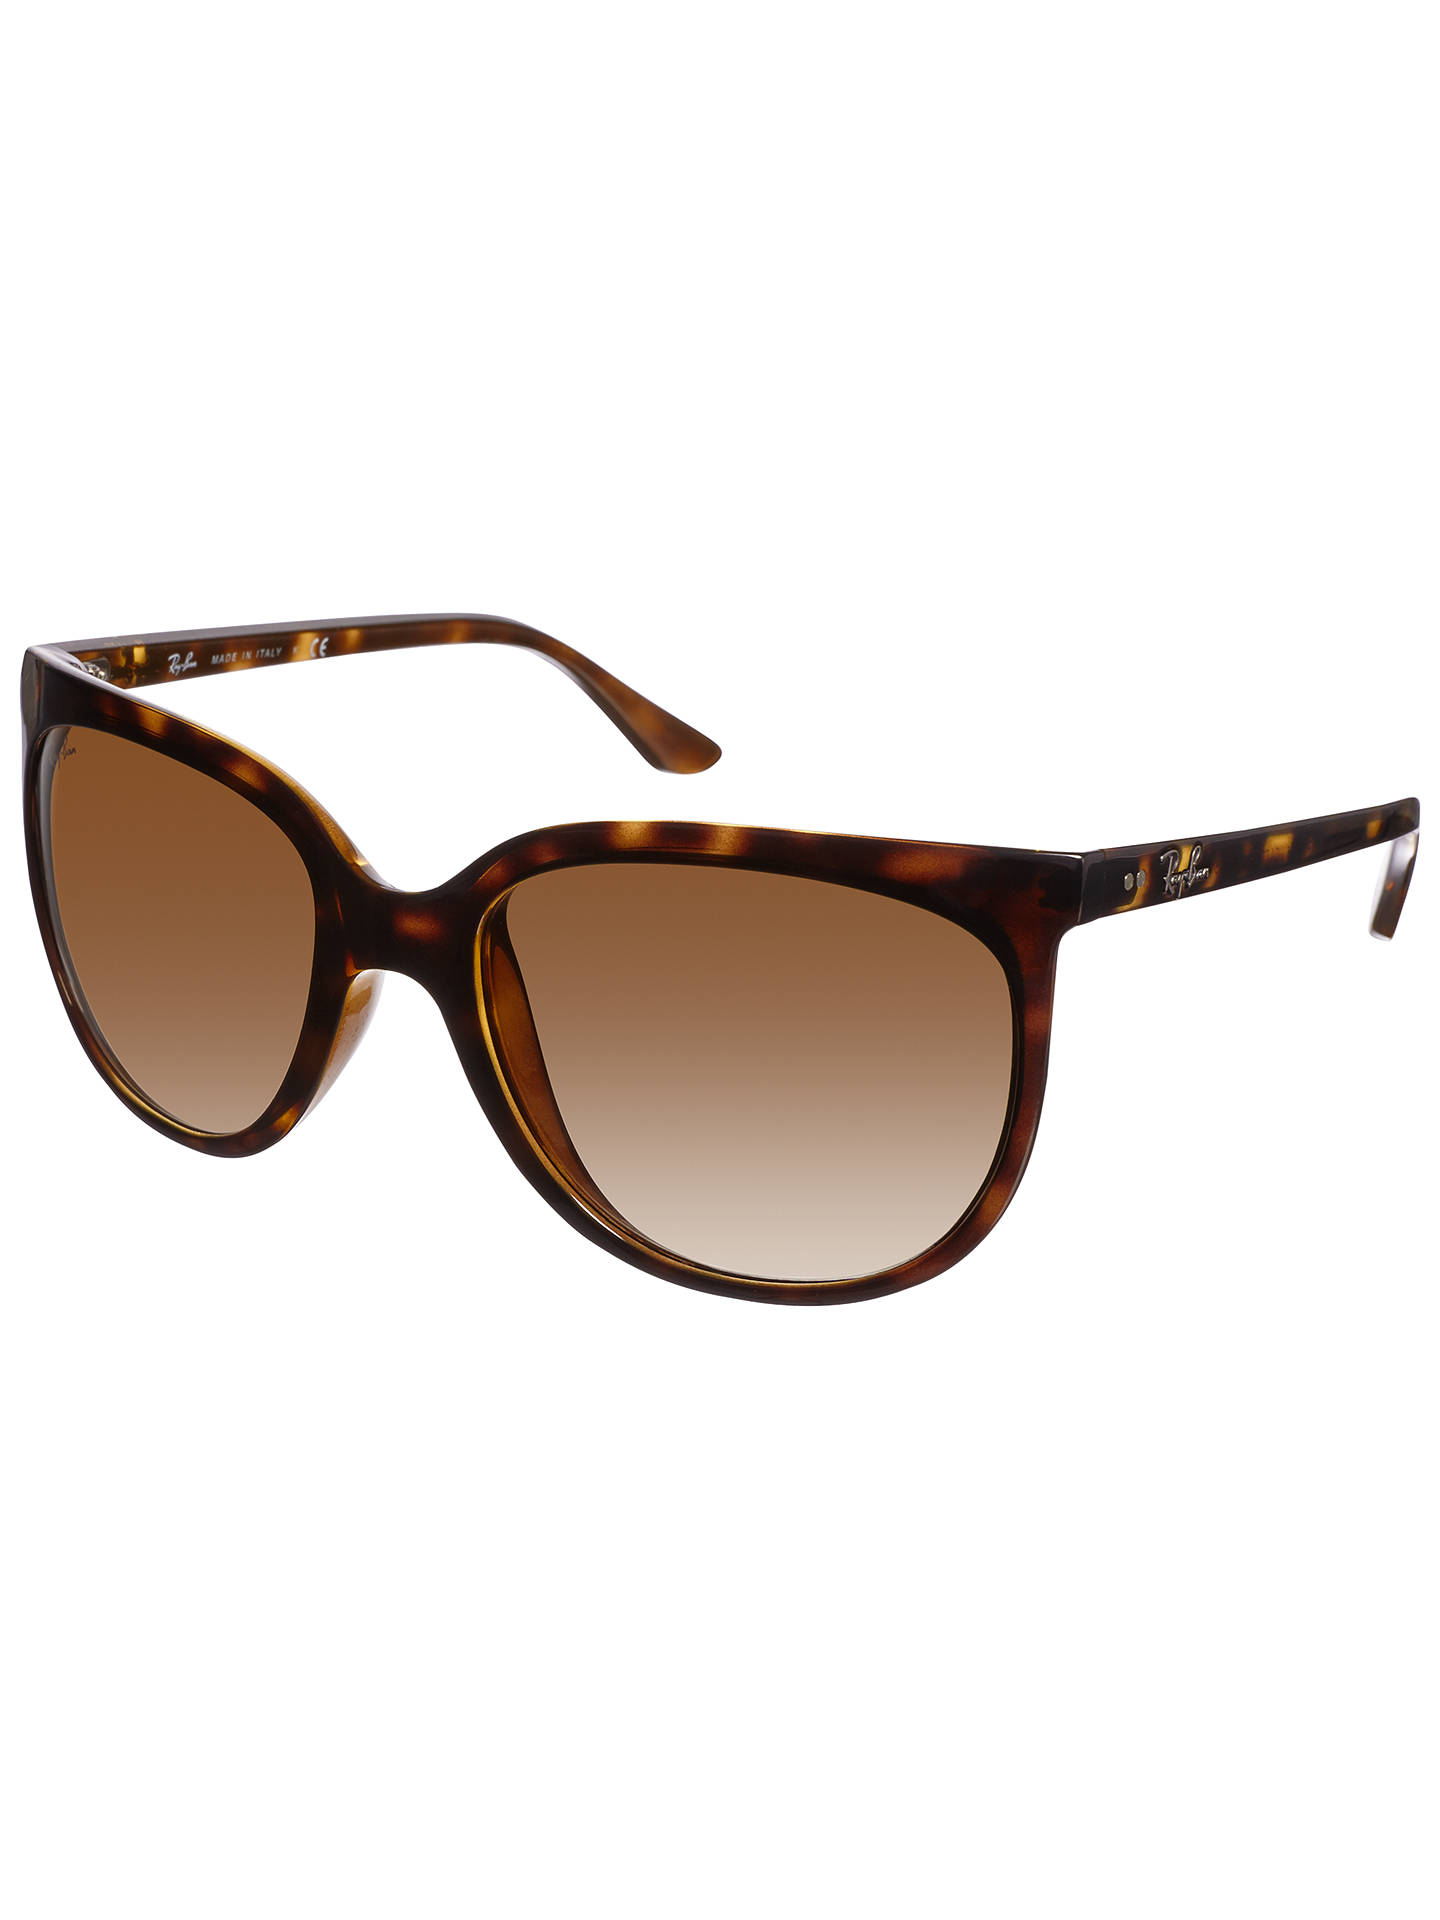 35b736306d Ray-Ban RB4126 Cats 1000 Sunglasses at John Lewis   Partners